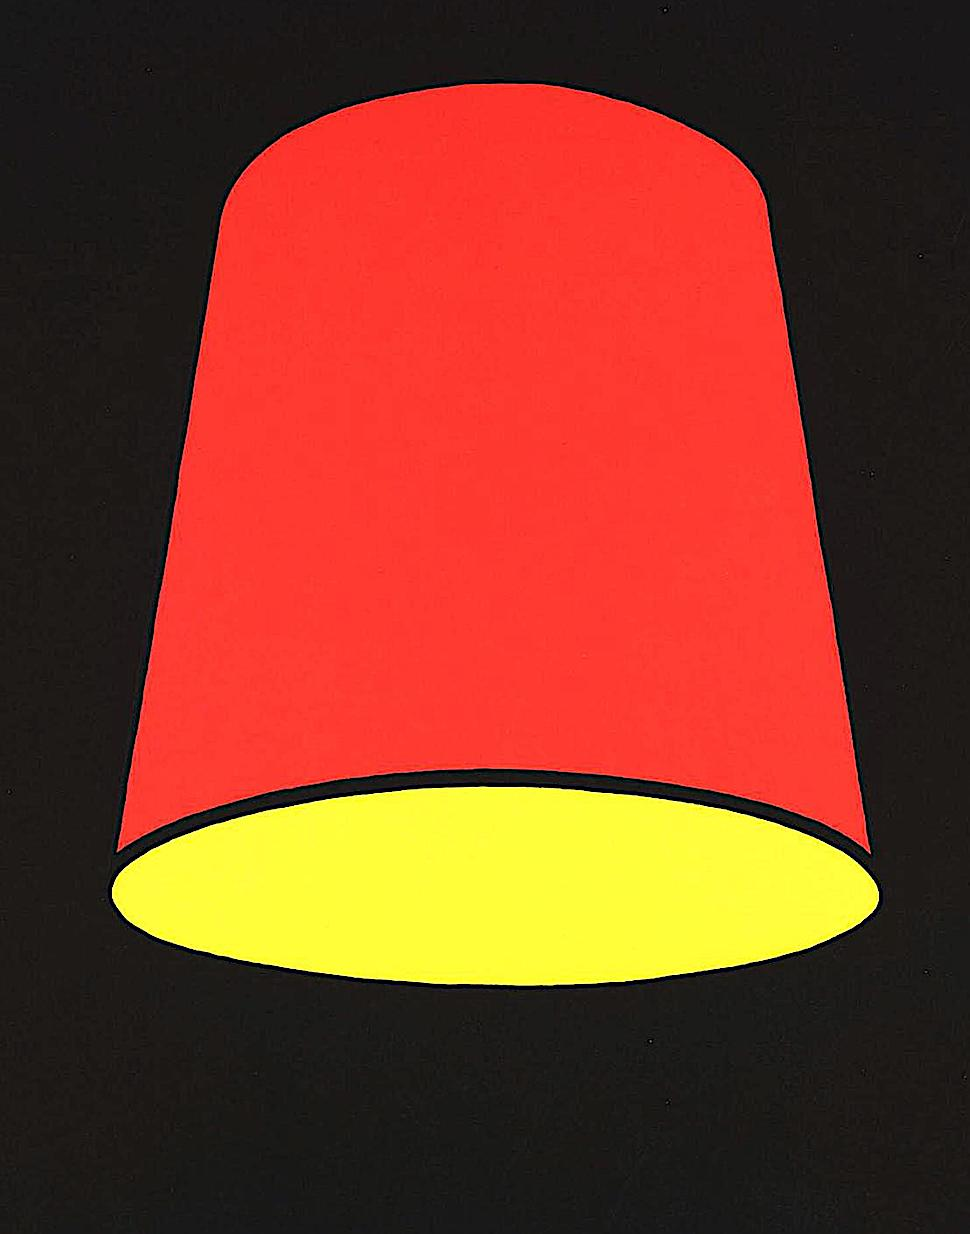 Patrick Caulfield art 1969, a red and yellow lampshade